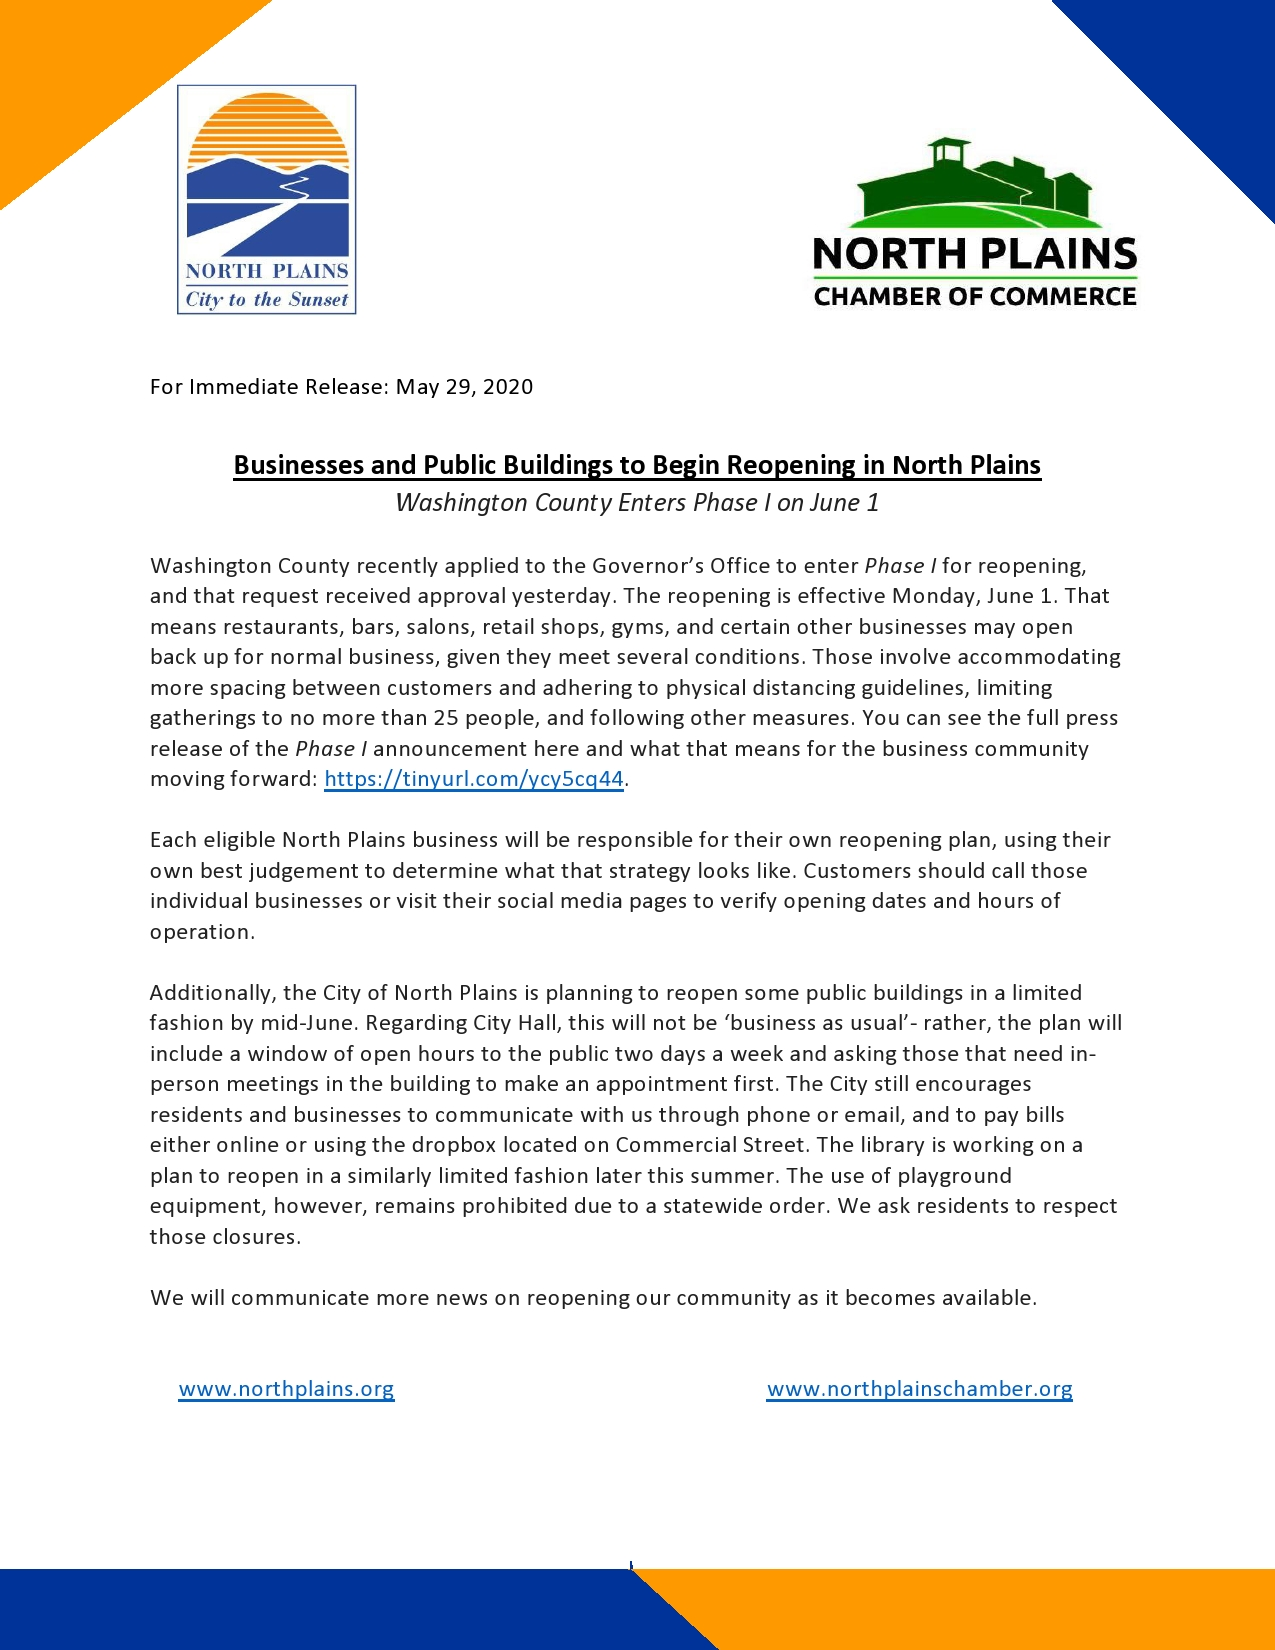 Notice From the City of North Plains